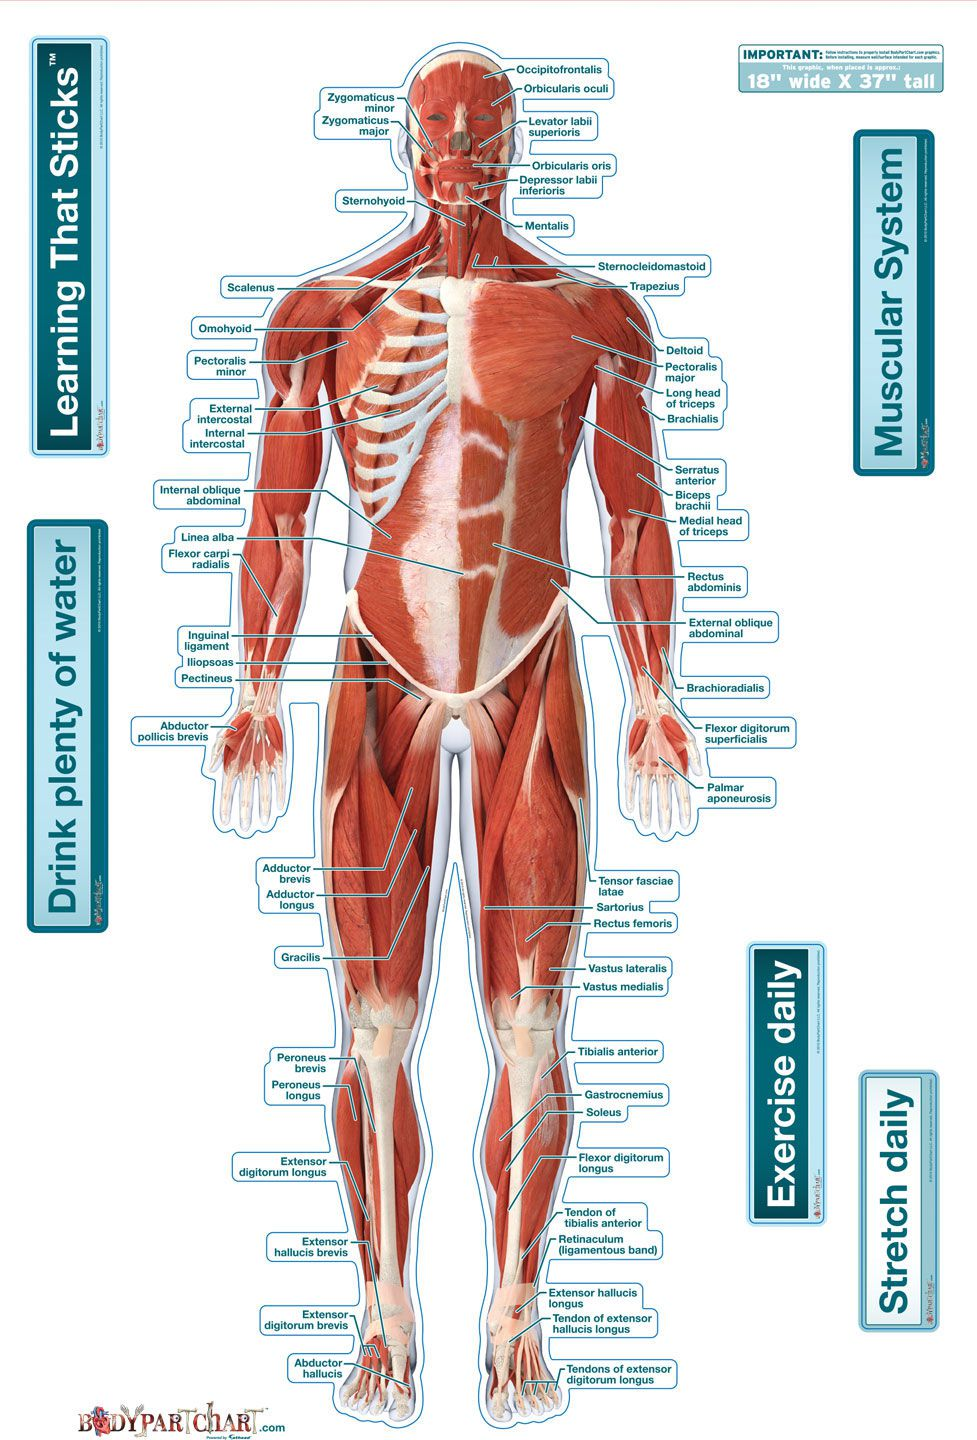 bodypartchart muscular system front labeled